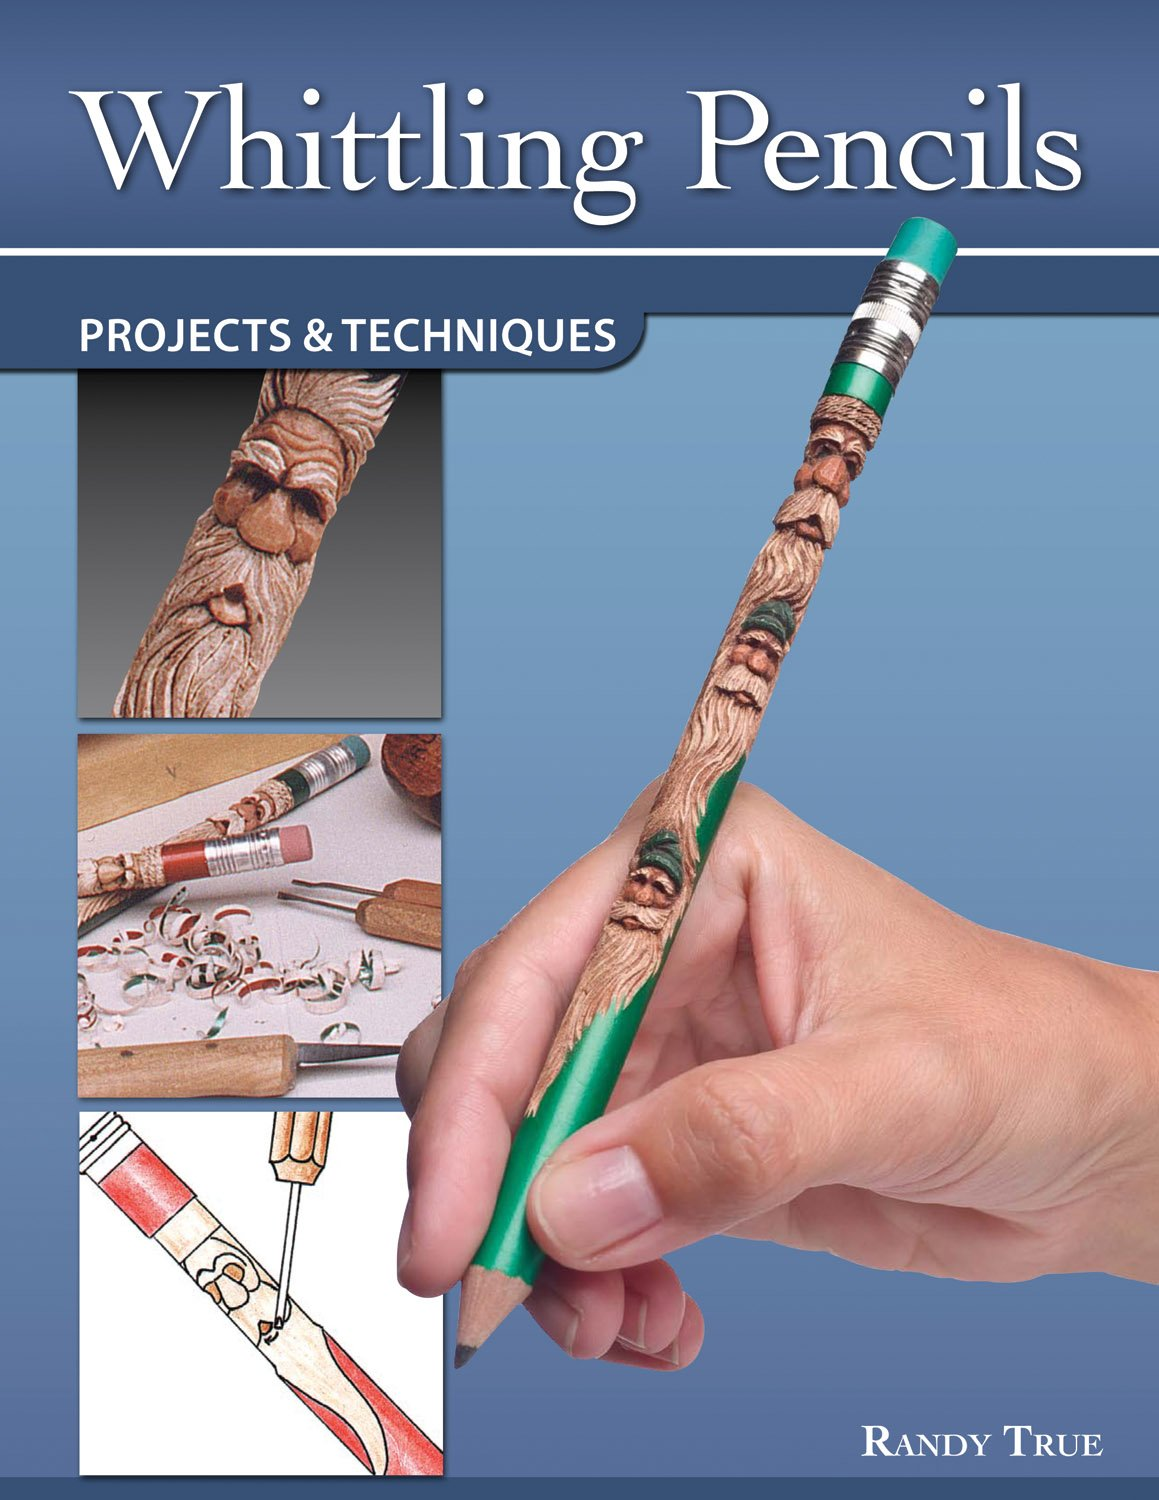 Whittling pencils: projects and techniques fox chapel publishing